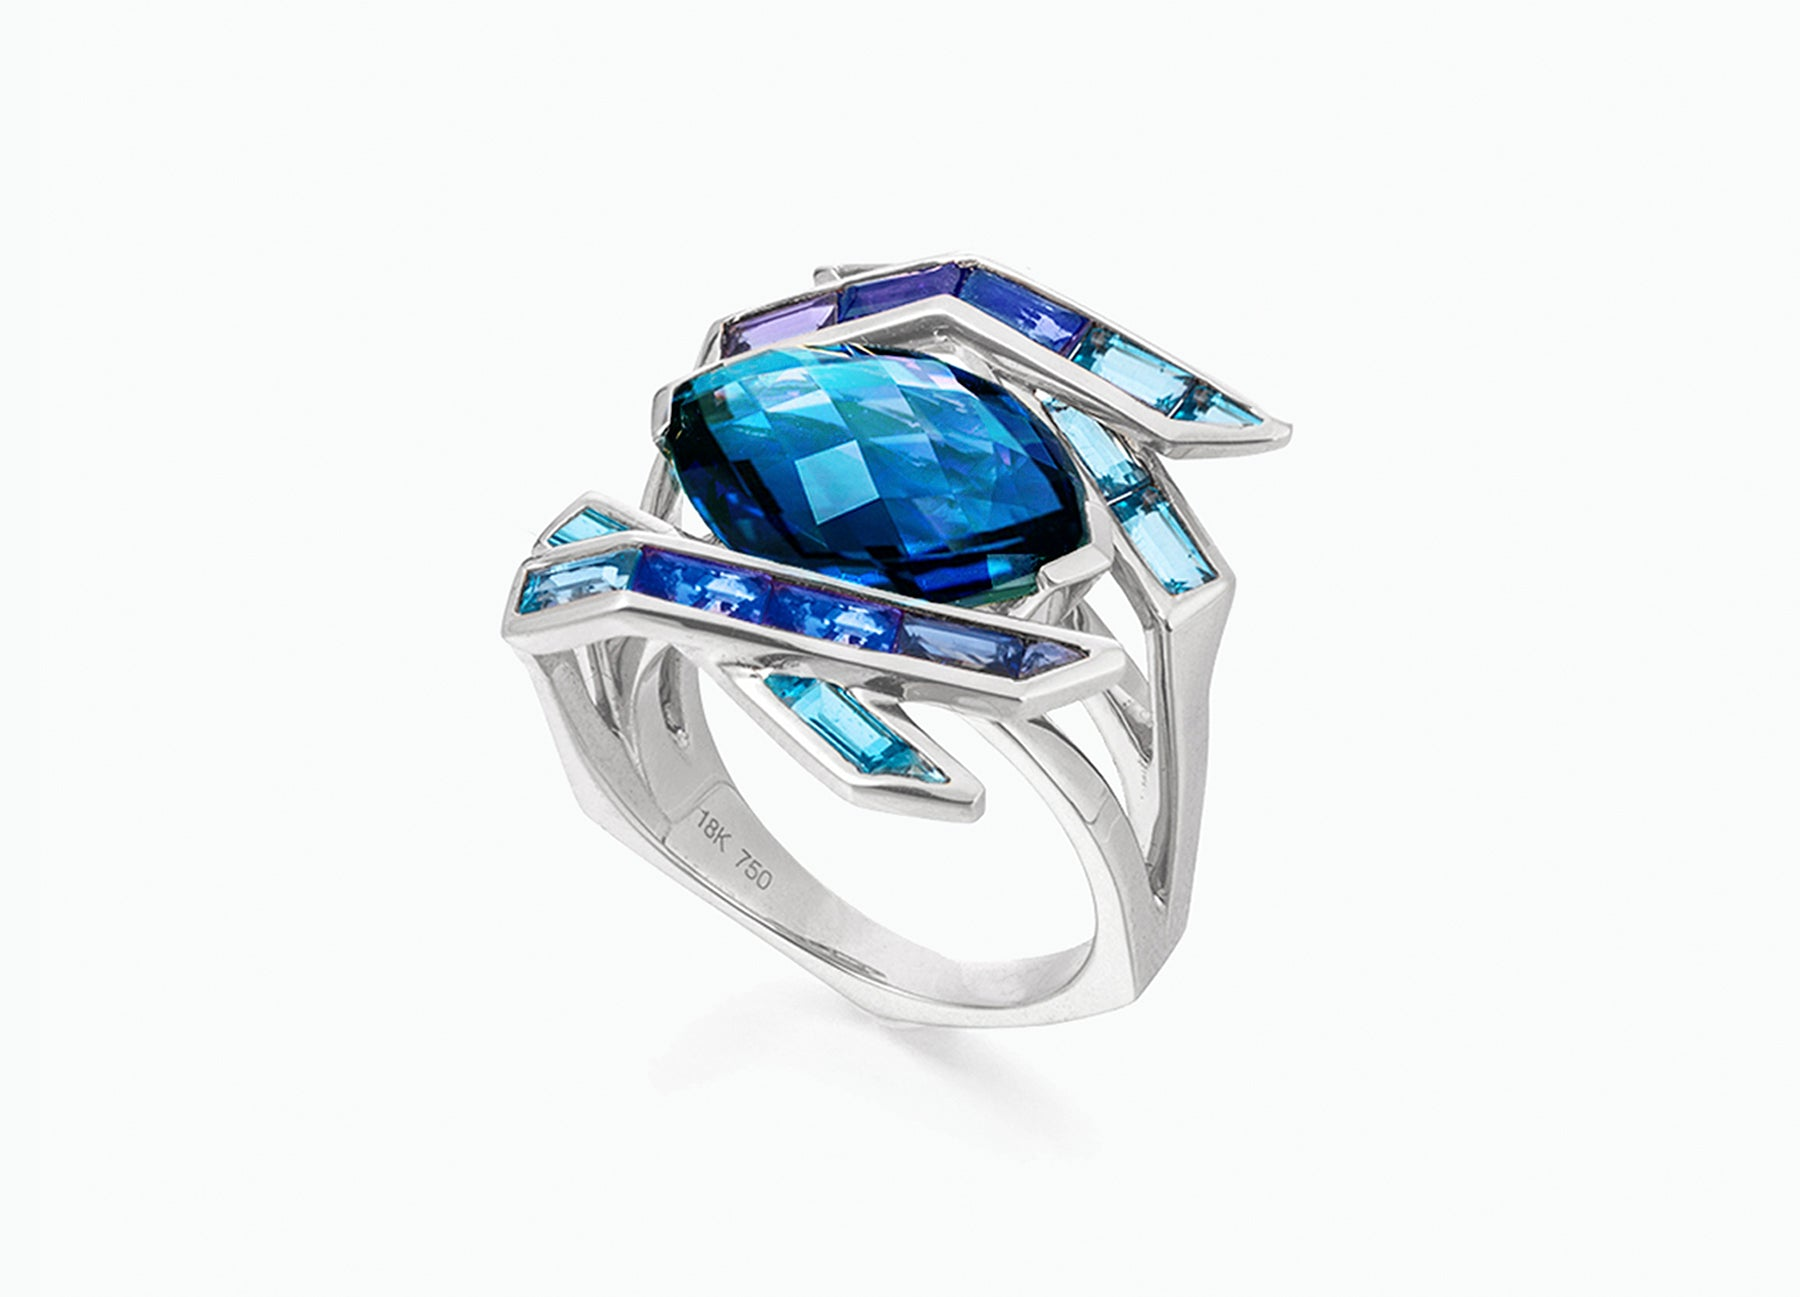 ELECTRIC NIGHT BLUE COCKTAIL RING